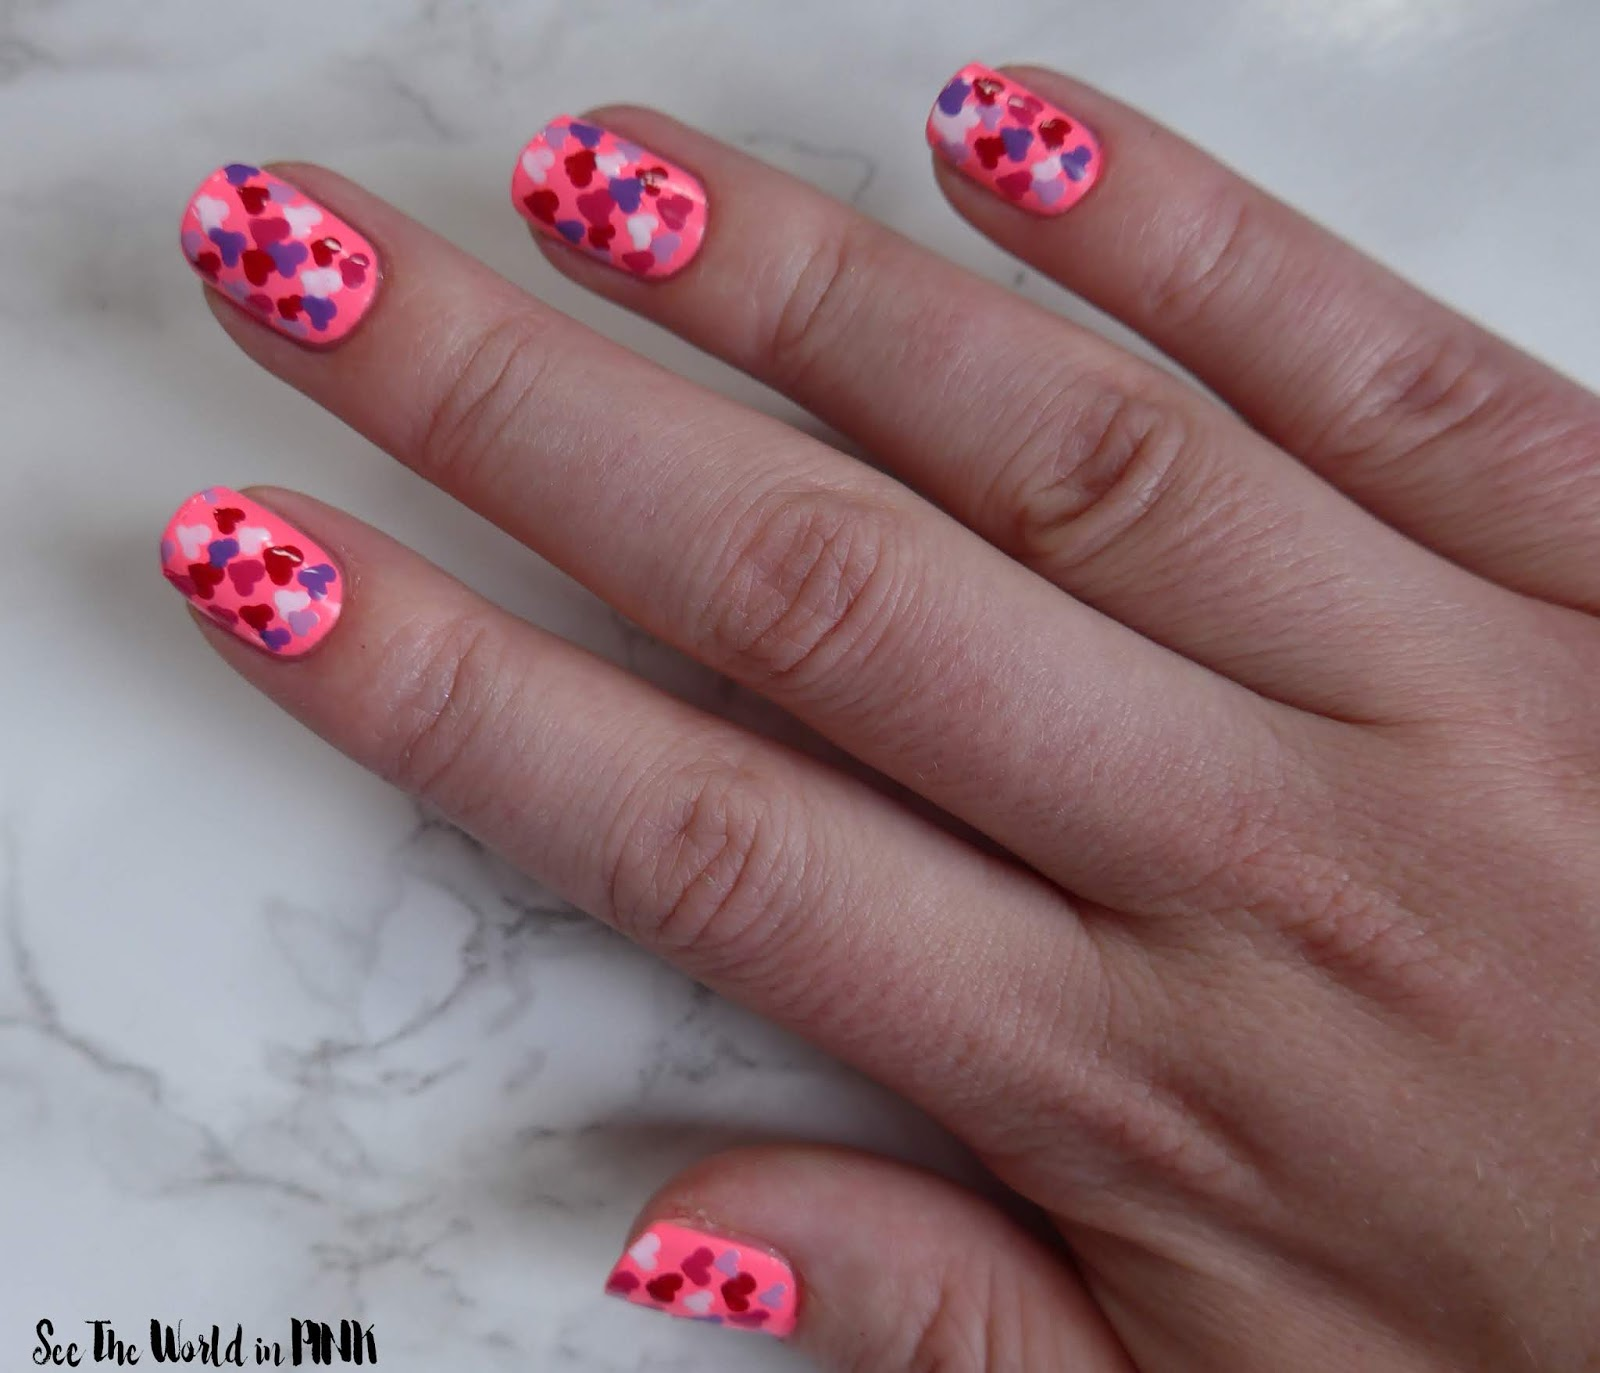 Manicure Monday - Neon Pink Heart Nails